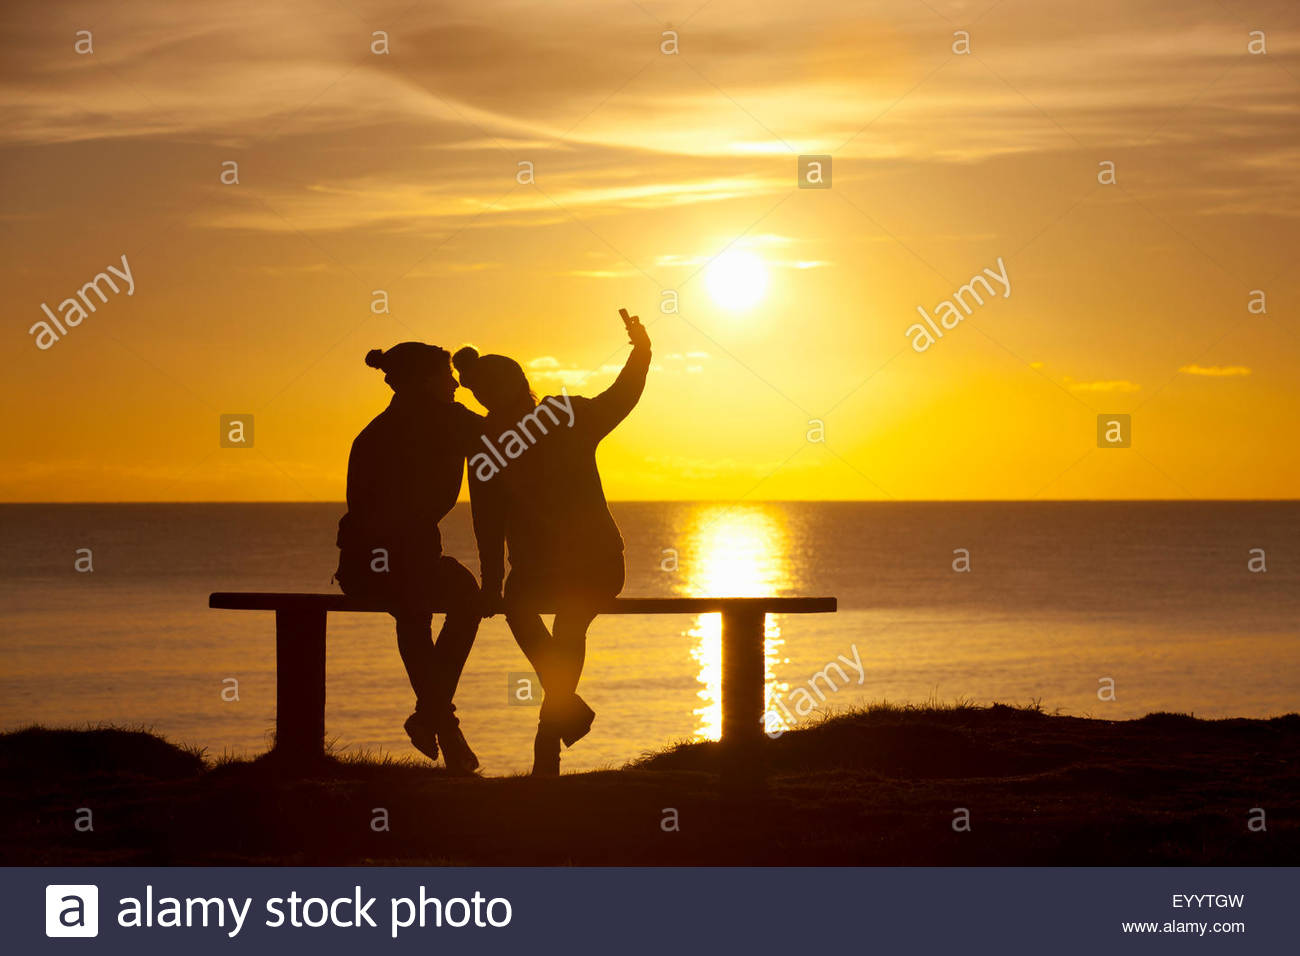 Silhouette of couple, sitting on bench taking selfie on mobile phone, against sunset over the ocean Stock Photo